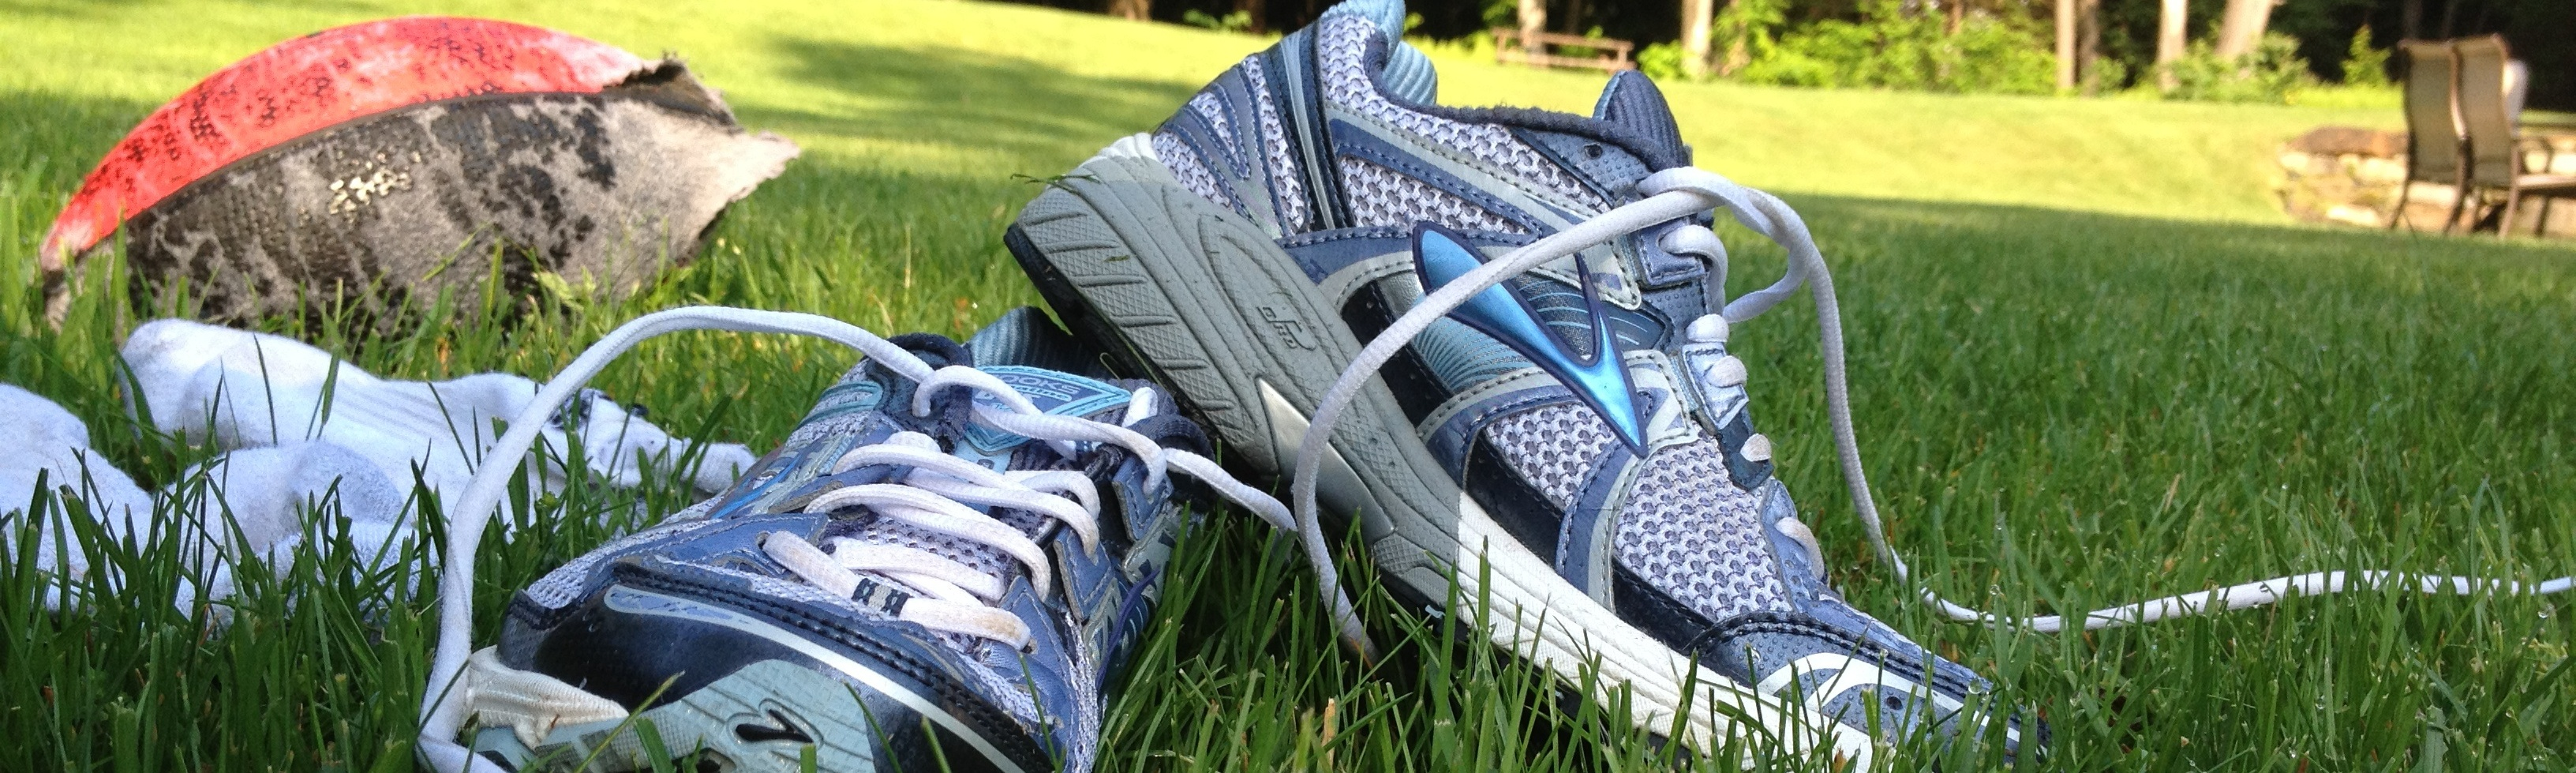 blue and white running shoes and rugby ball in a park